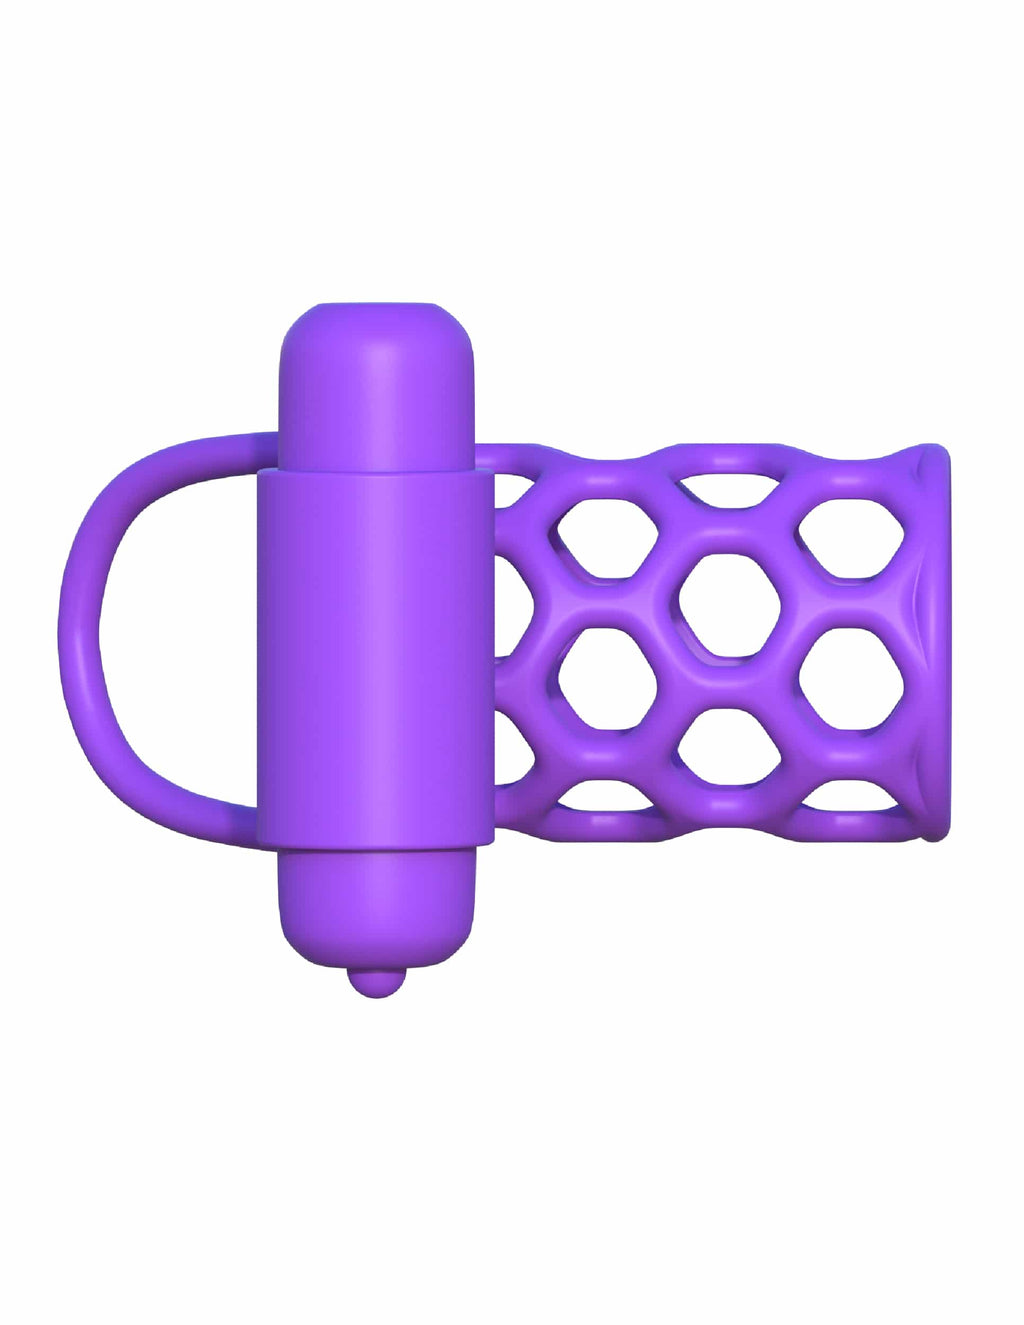 Fantasy C-Ringz Vibrating Couples Cage | Cock Ring, Couples Toys, Sex Toys For Men, Sex Toys, Adult Toys | My Sex Shop